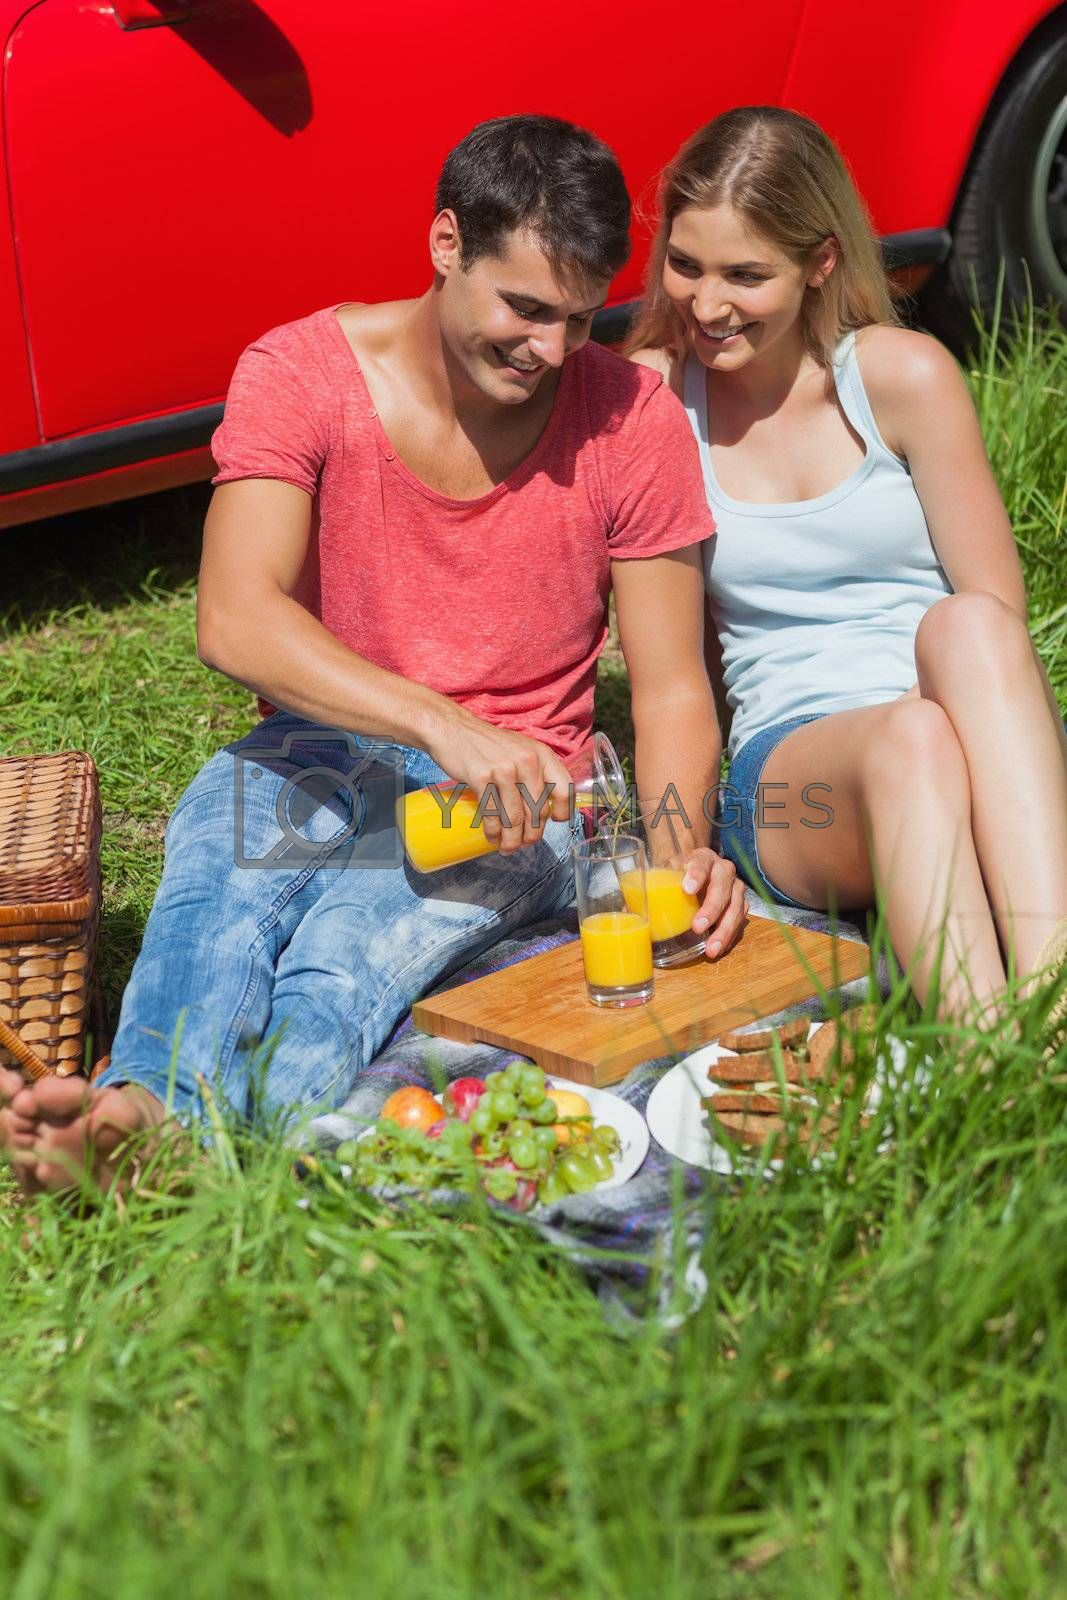 Happy couple sitting on the grass having picnic together by Wavebreakmedia